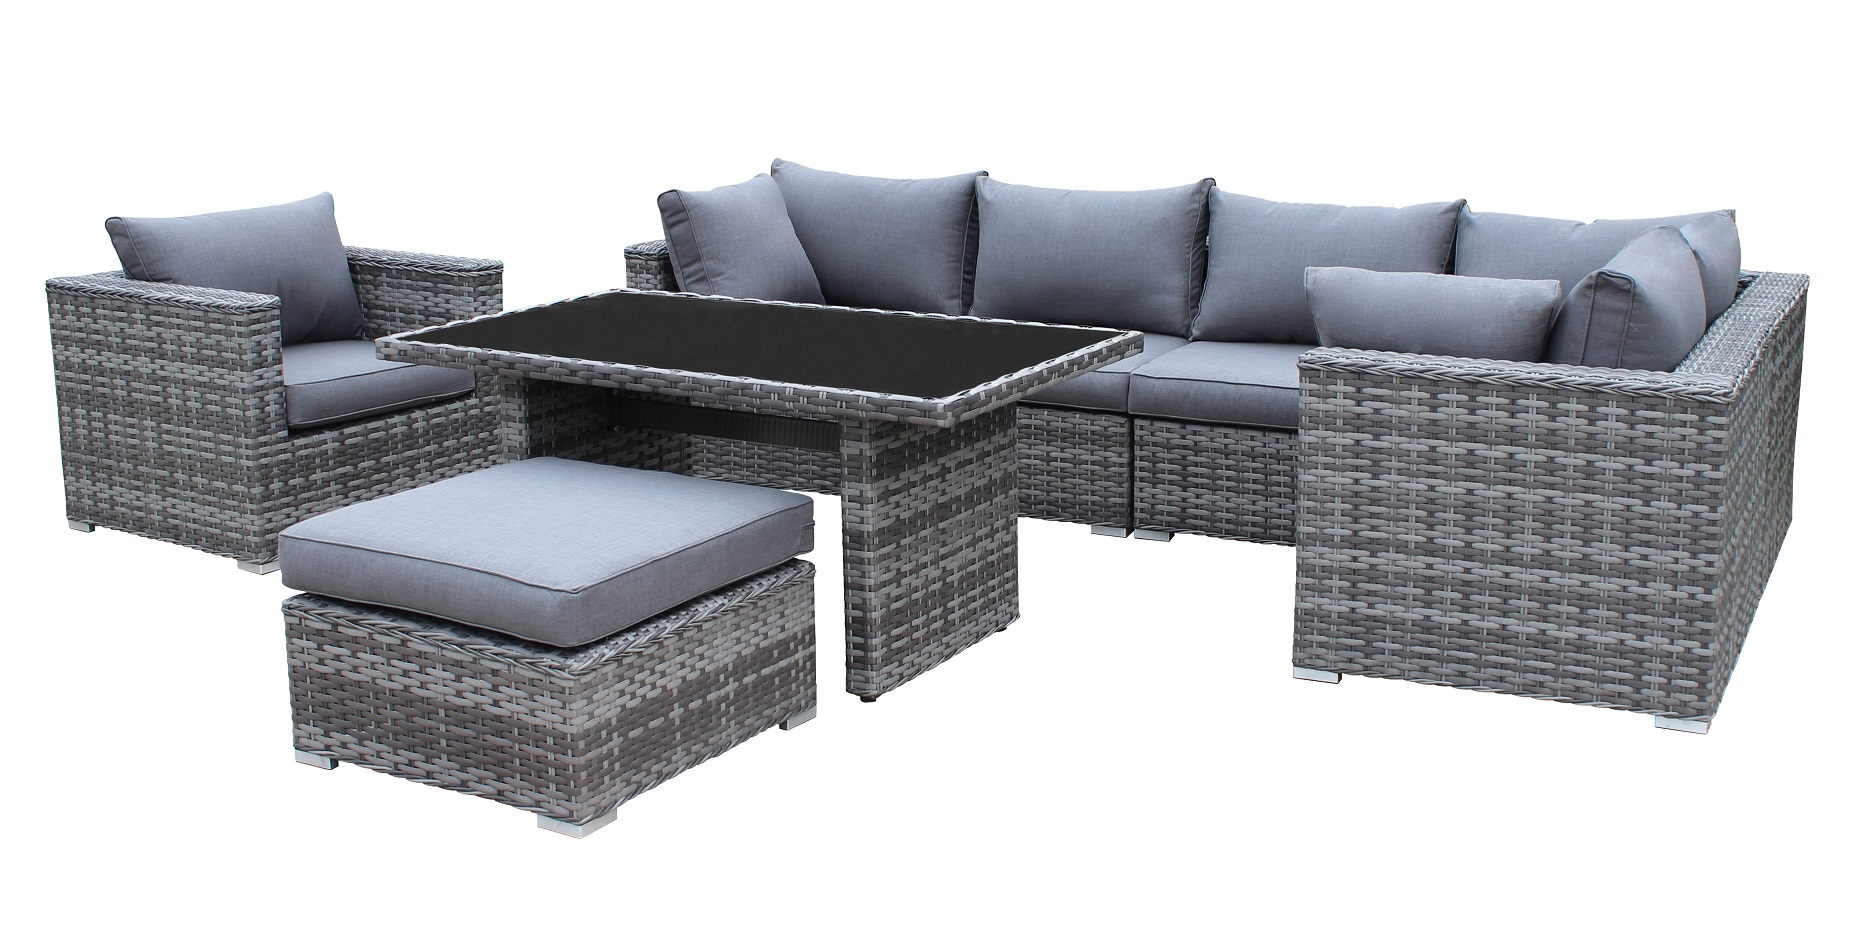 comfort xl polyrattan ecklounge gartenm bel sitzgruppe. Black Bedroom Furniture Sets. Home Design Ideas